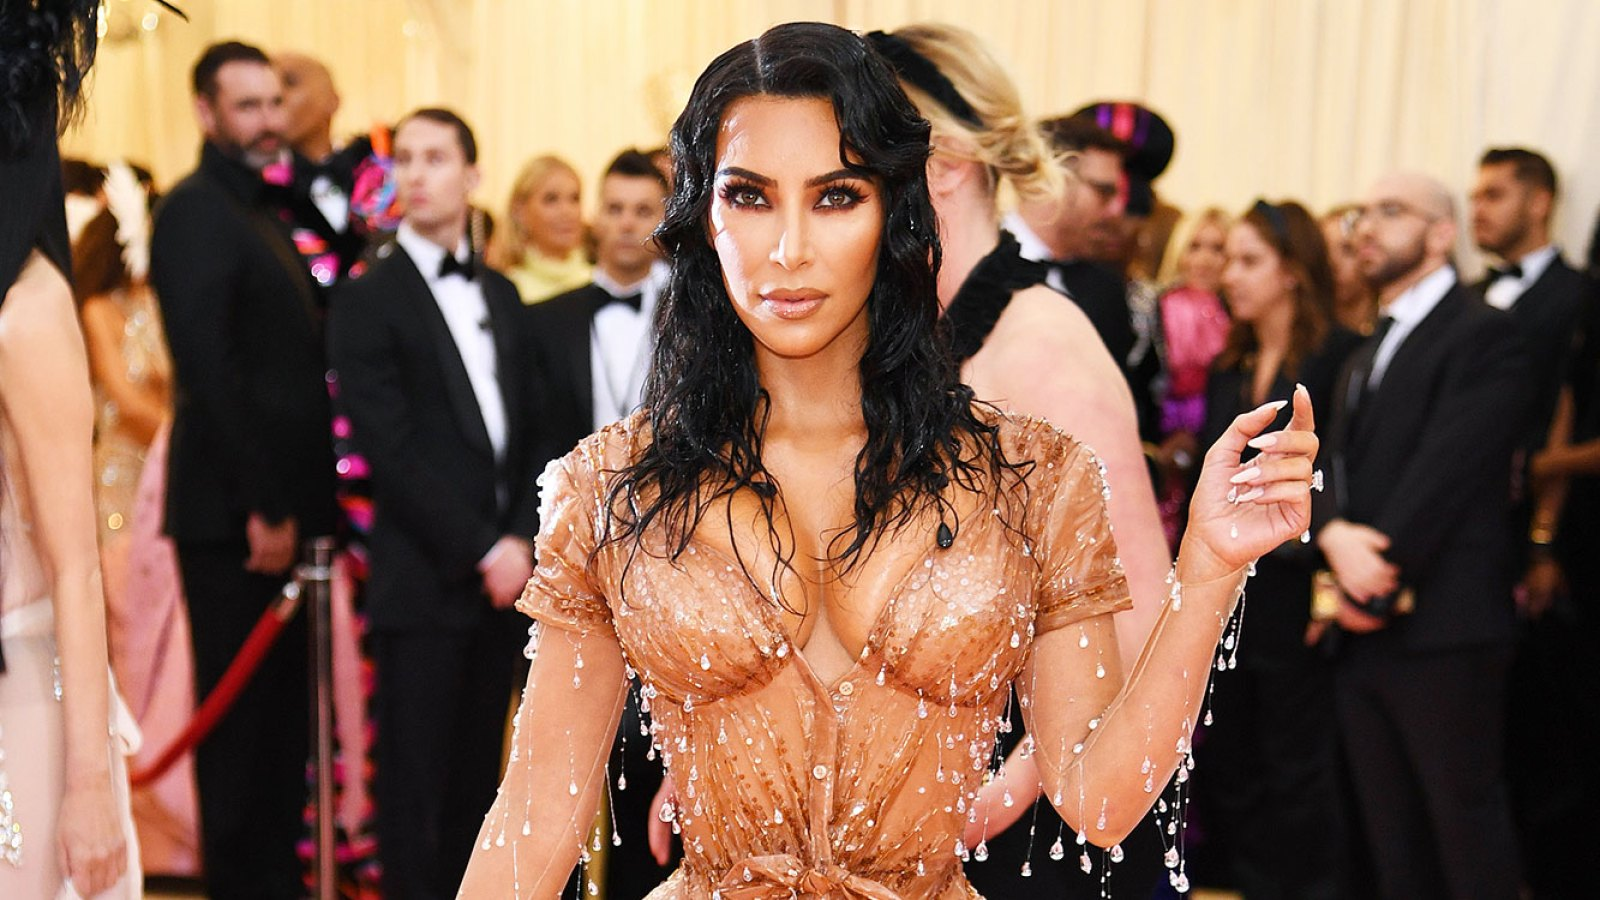 bcf9ab47e5 Kim Kardashian Says She Could 'Hardly Sit' in Met Gala Look